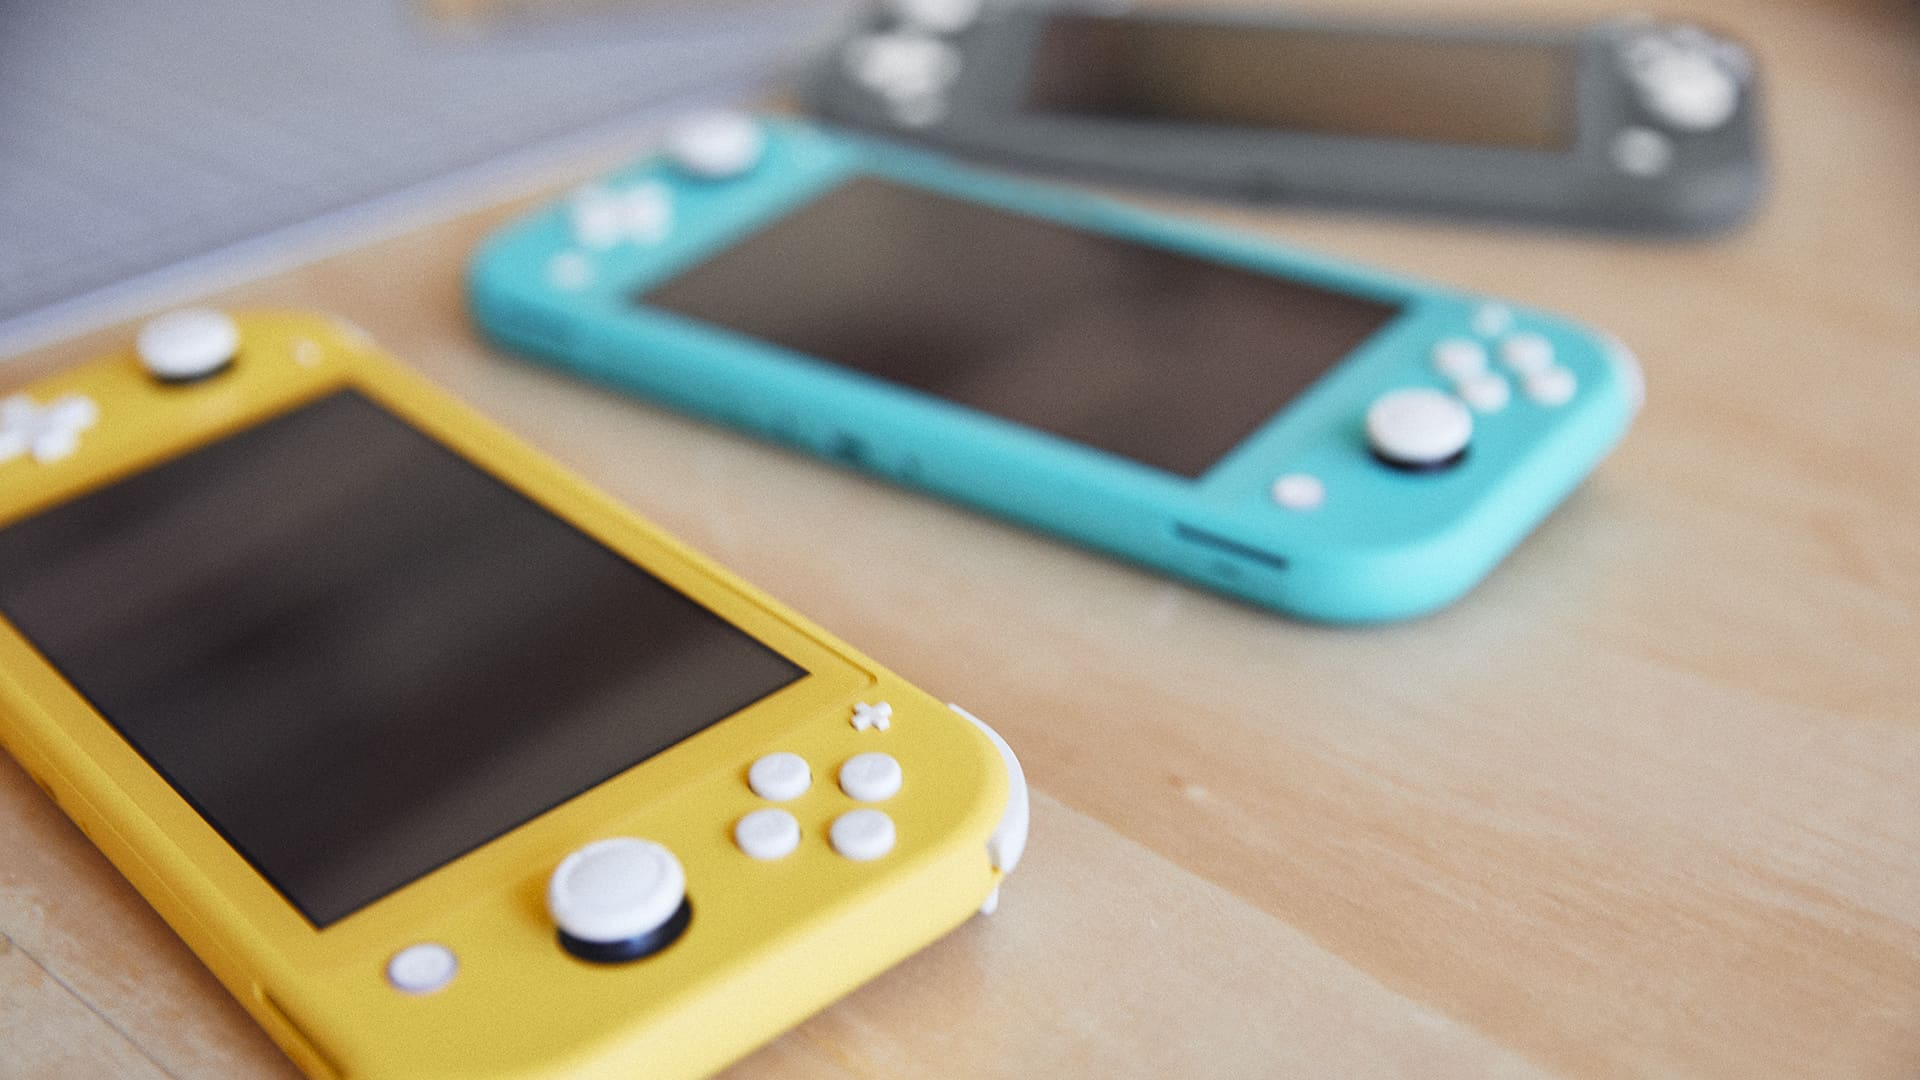 Nintendo Announces New, Cheaper Switch Lite, Can't Actually 'Switch'